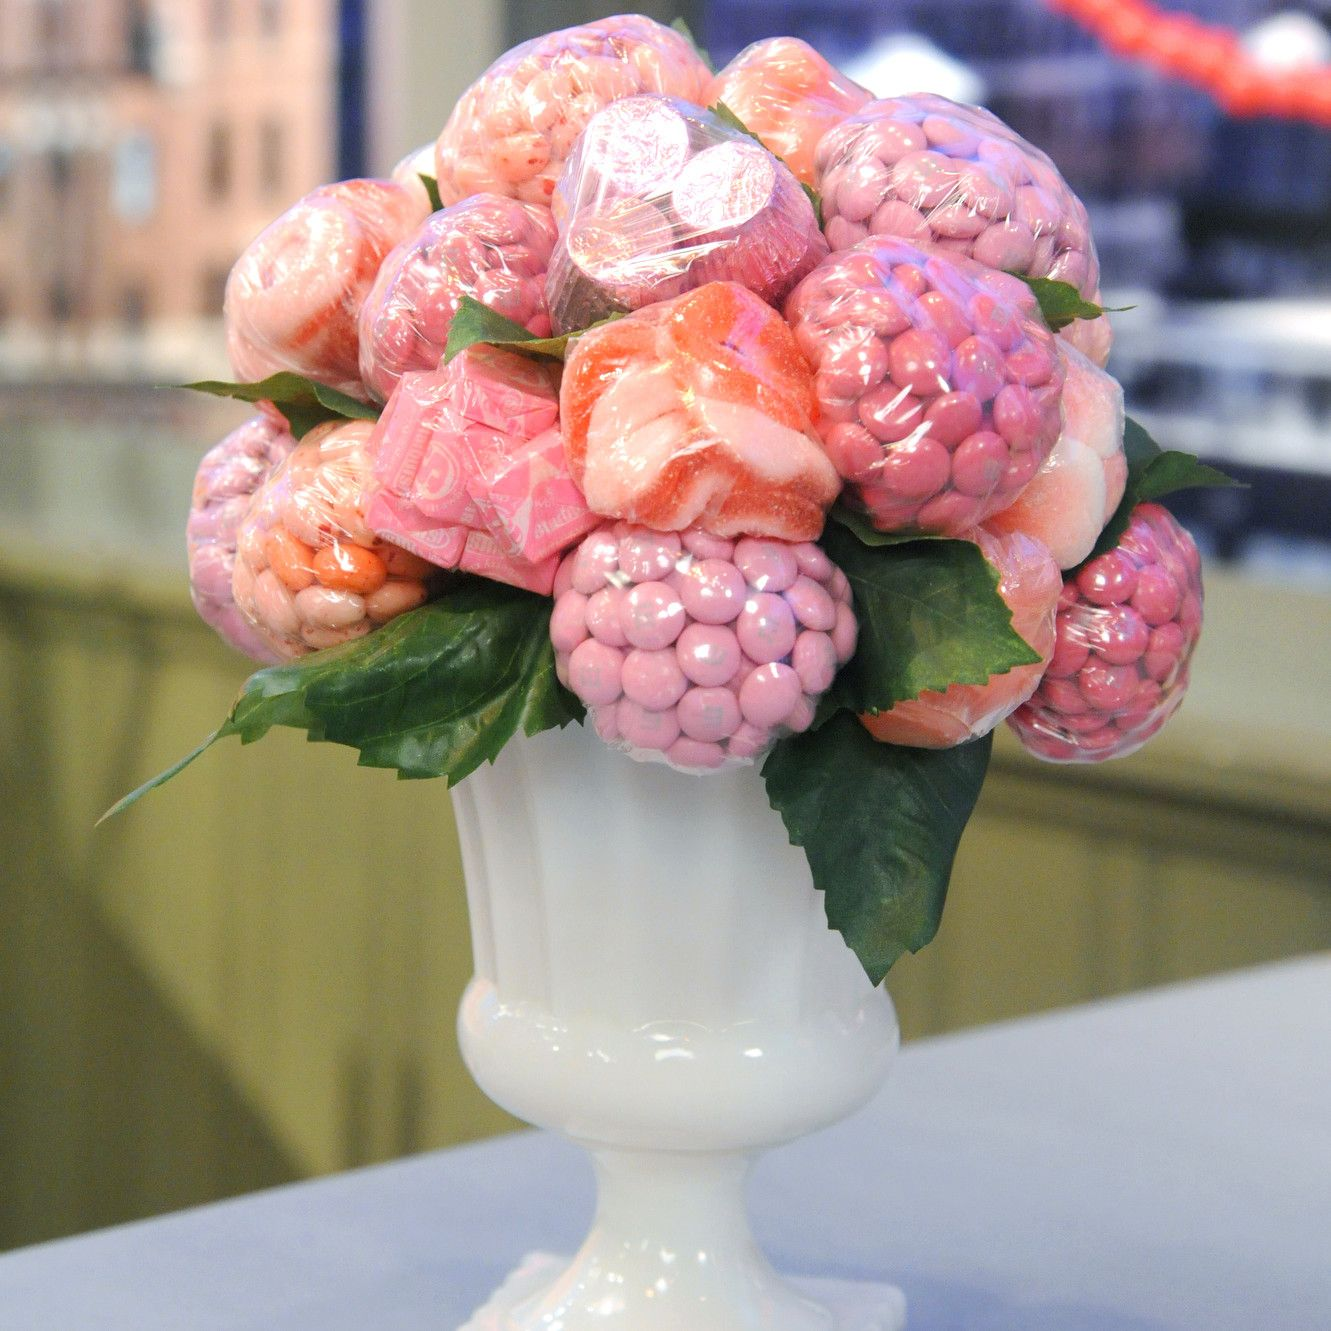 Candy centerpiece candy centerpieces martha stewart and craft learn how to craft a floral candy centerpiece with this how to from dylan lauren of dylans candy bar on the martha stewart show izmirmasajfo